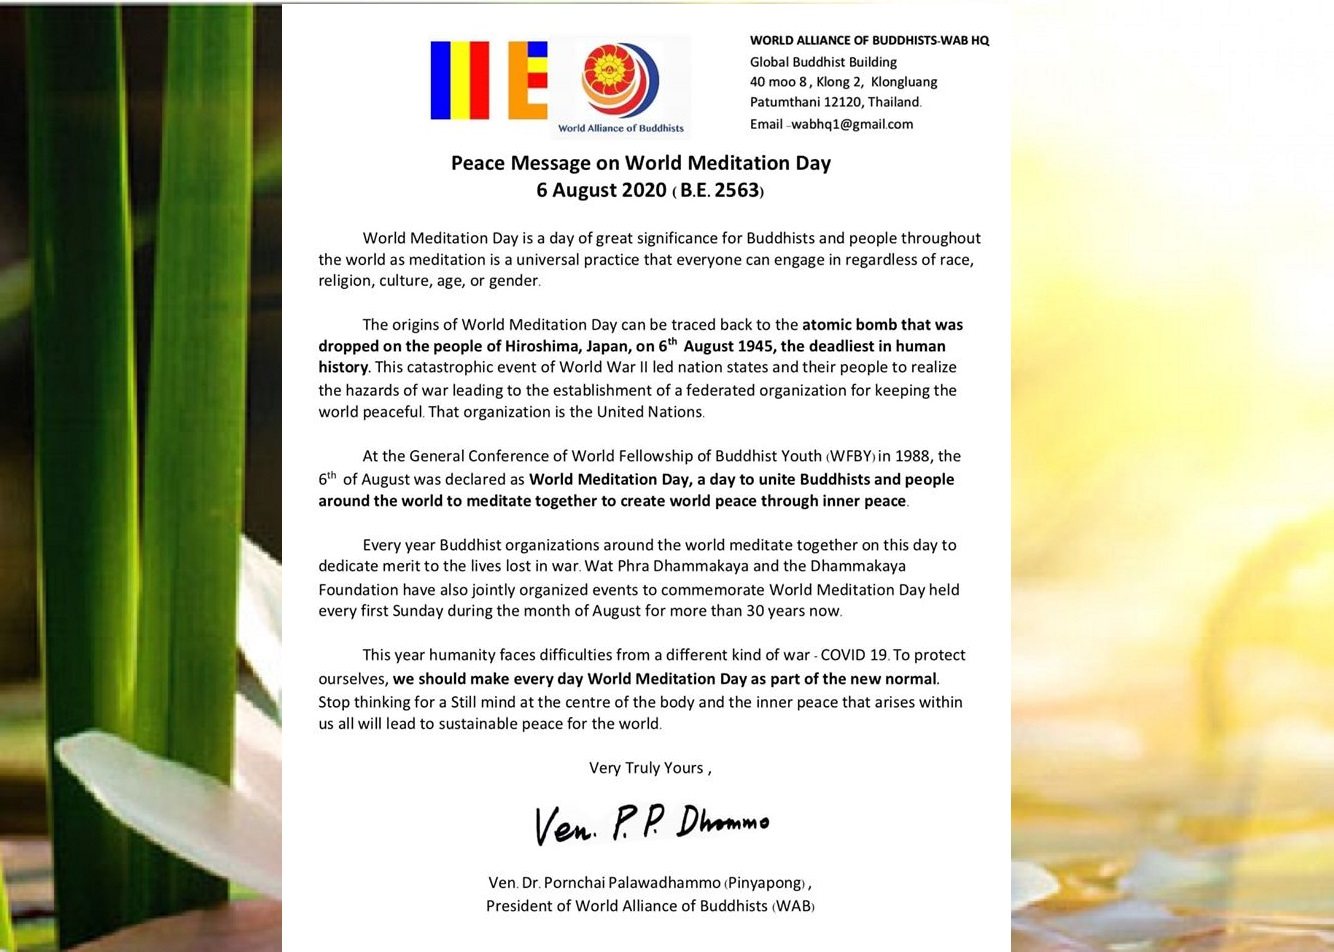 World Meditation Day - 6 Aug 2020 by Ven. Dr. Pornchai Palawadhammo